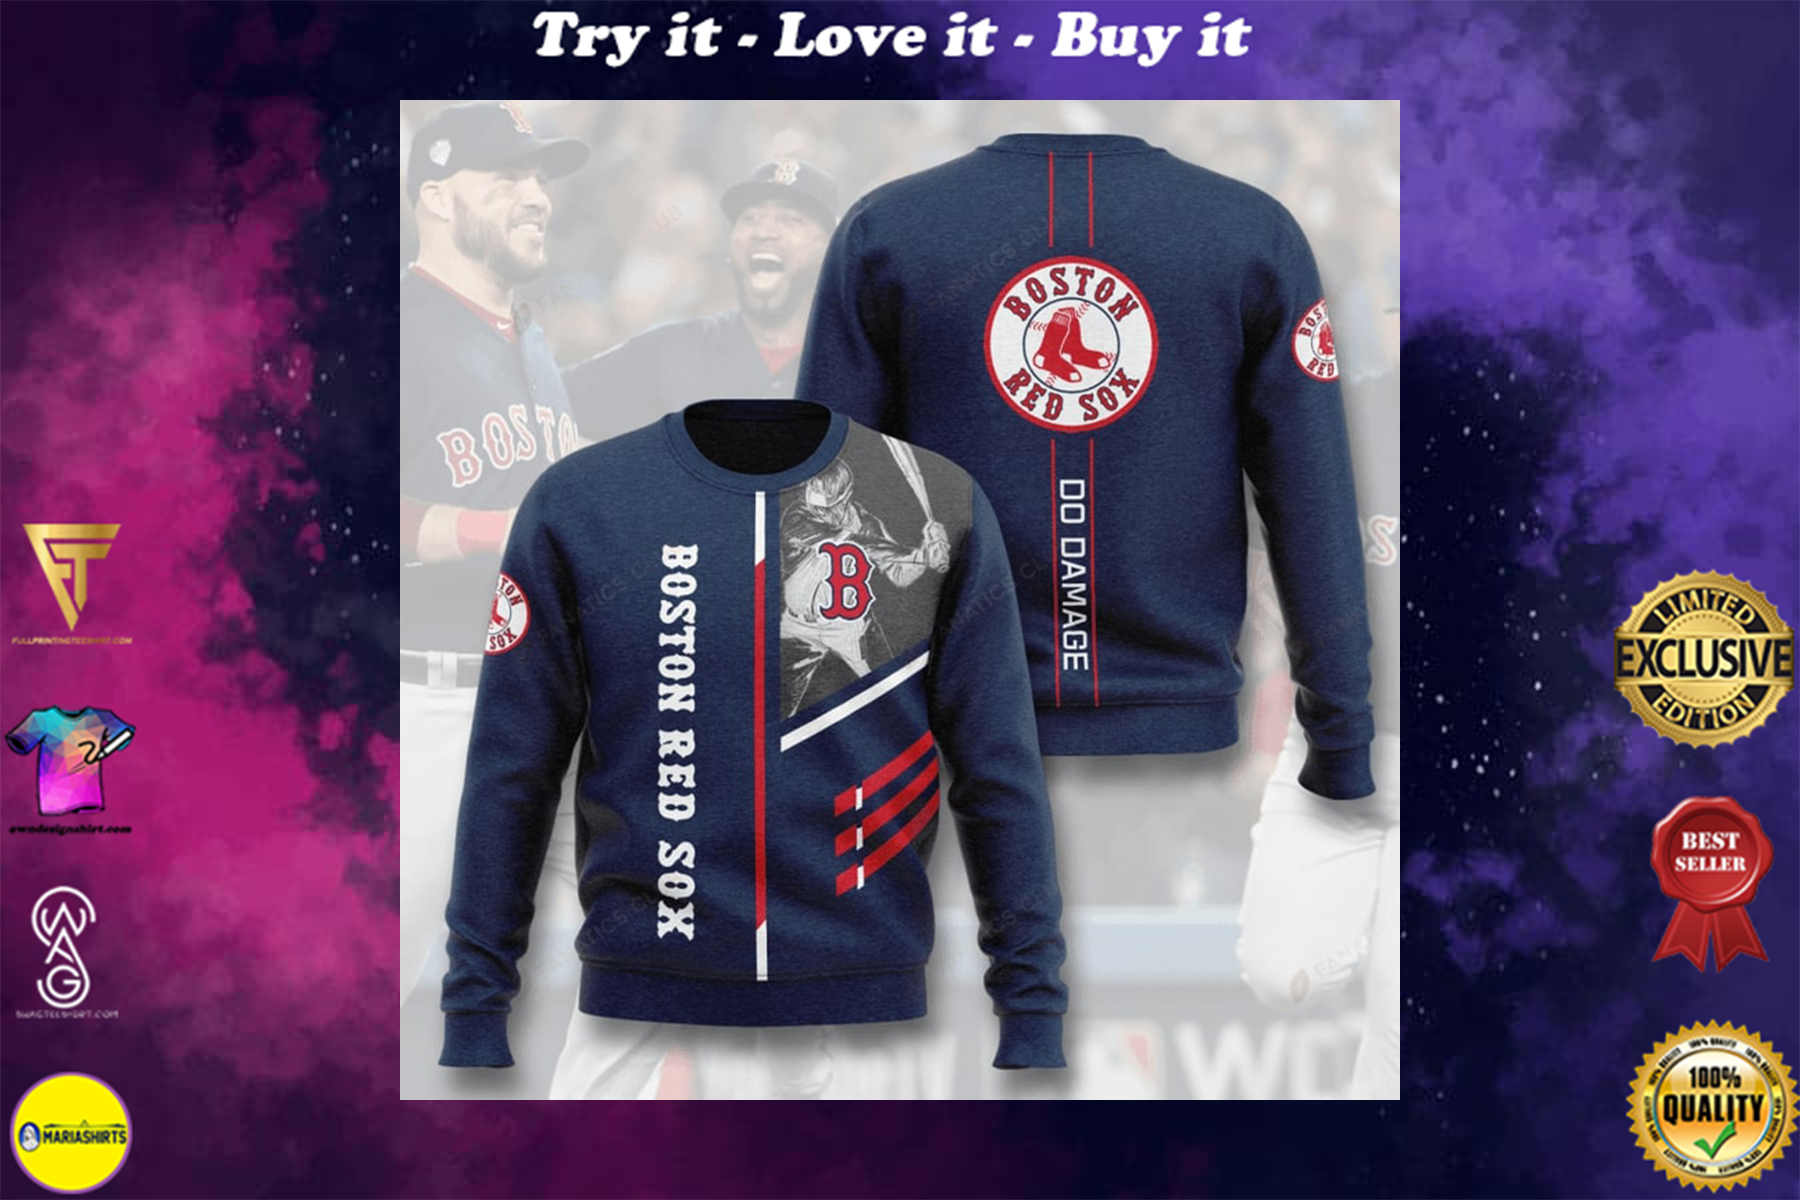 [special edition] boston red sox do damage full printing ugly sweater - maria